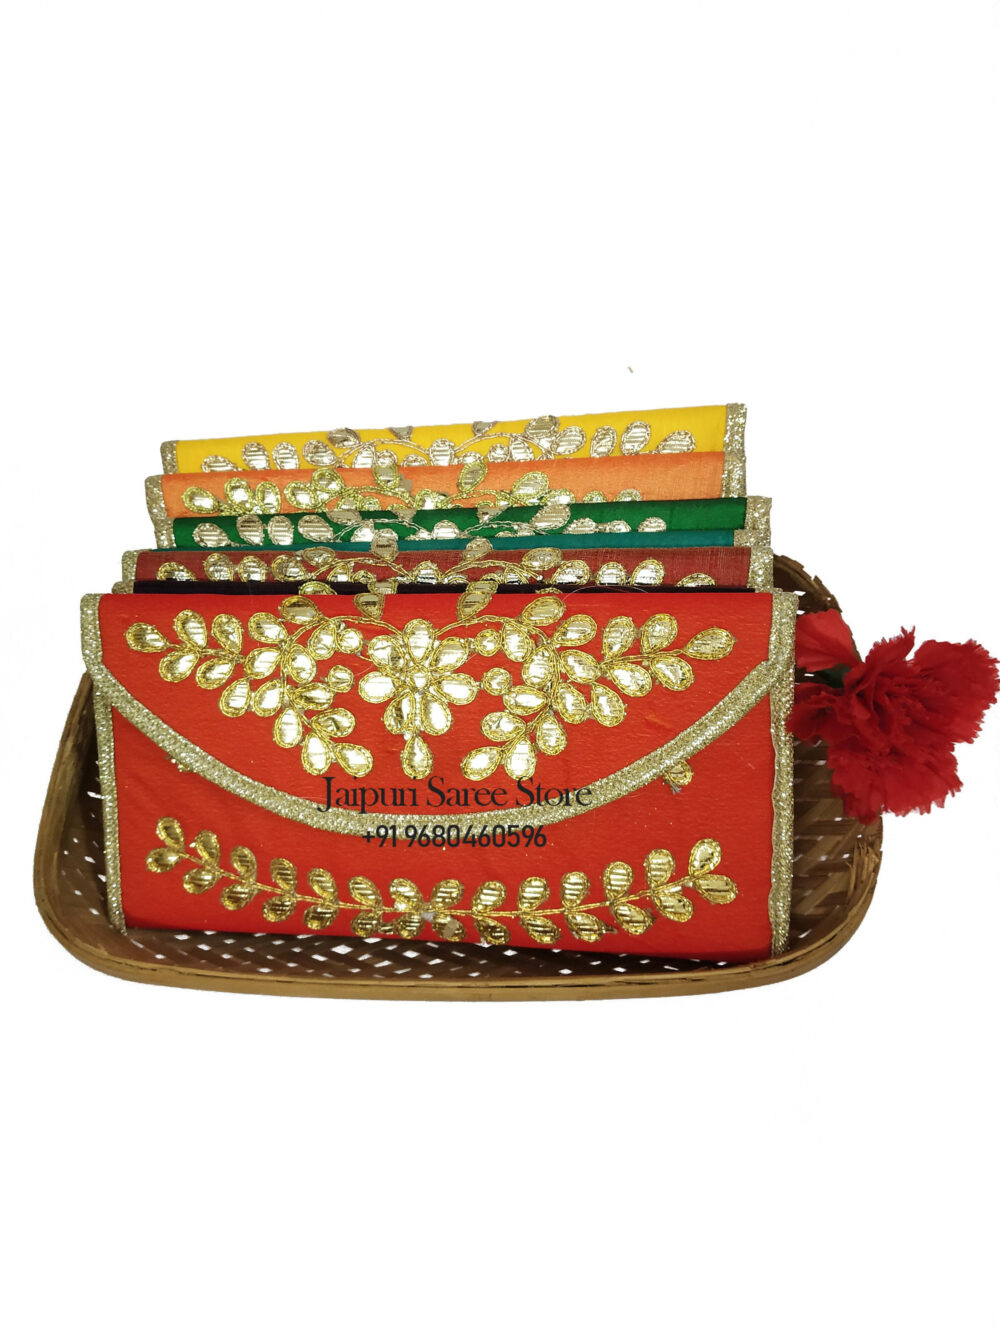 50 Pcs Handmade Women's Clutch Purse Wallet Wedding Favor Bridesmaids Return Gifts For Guests Sangeet Nikah Presents Free Shipping